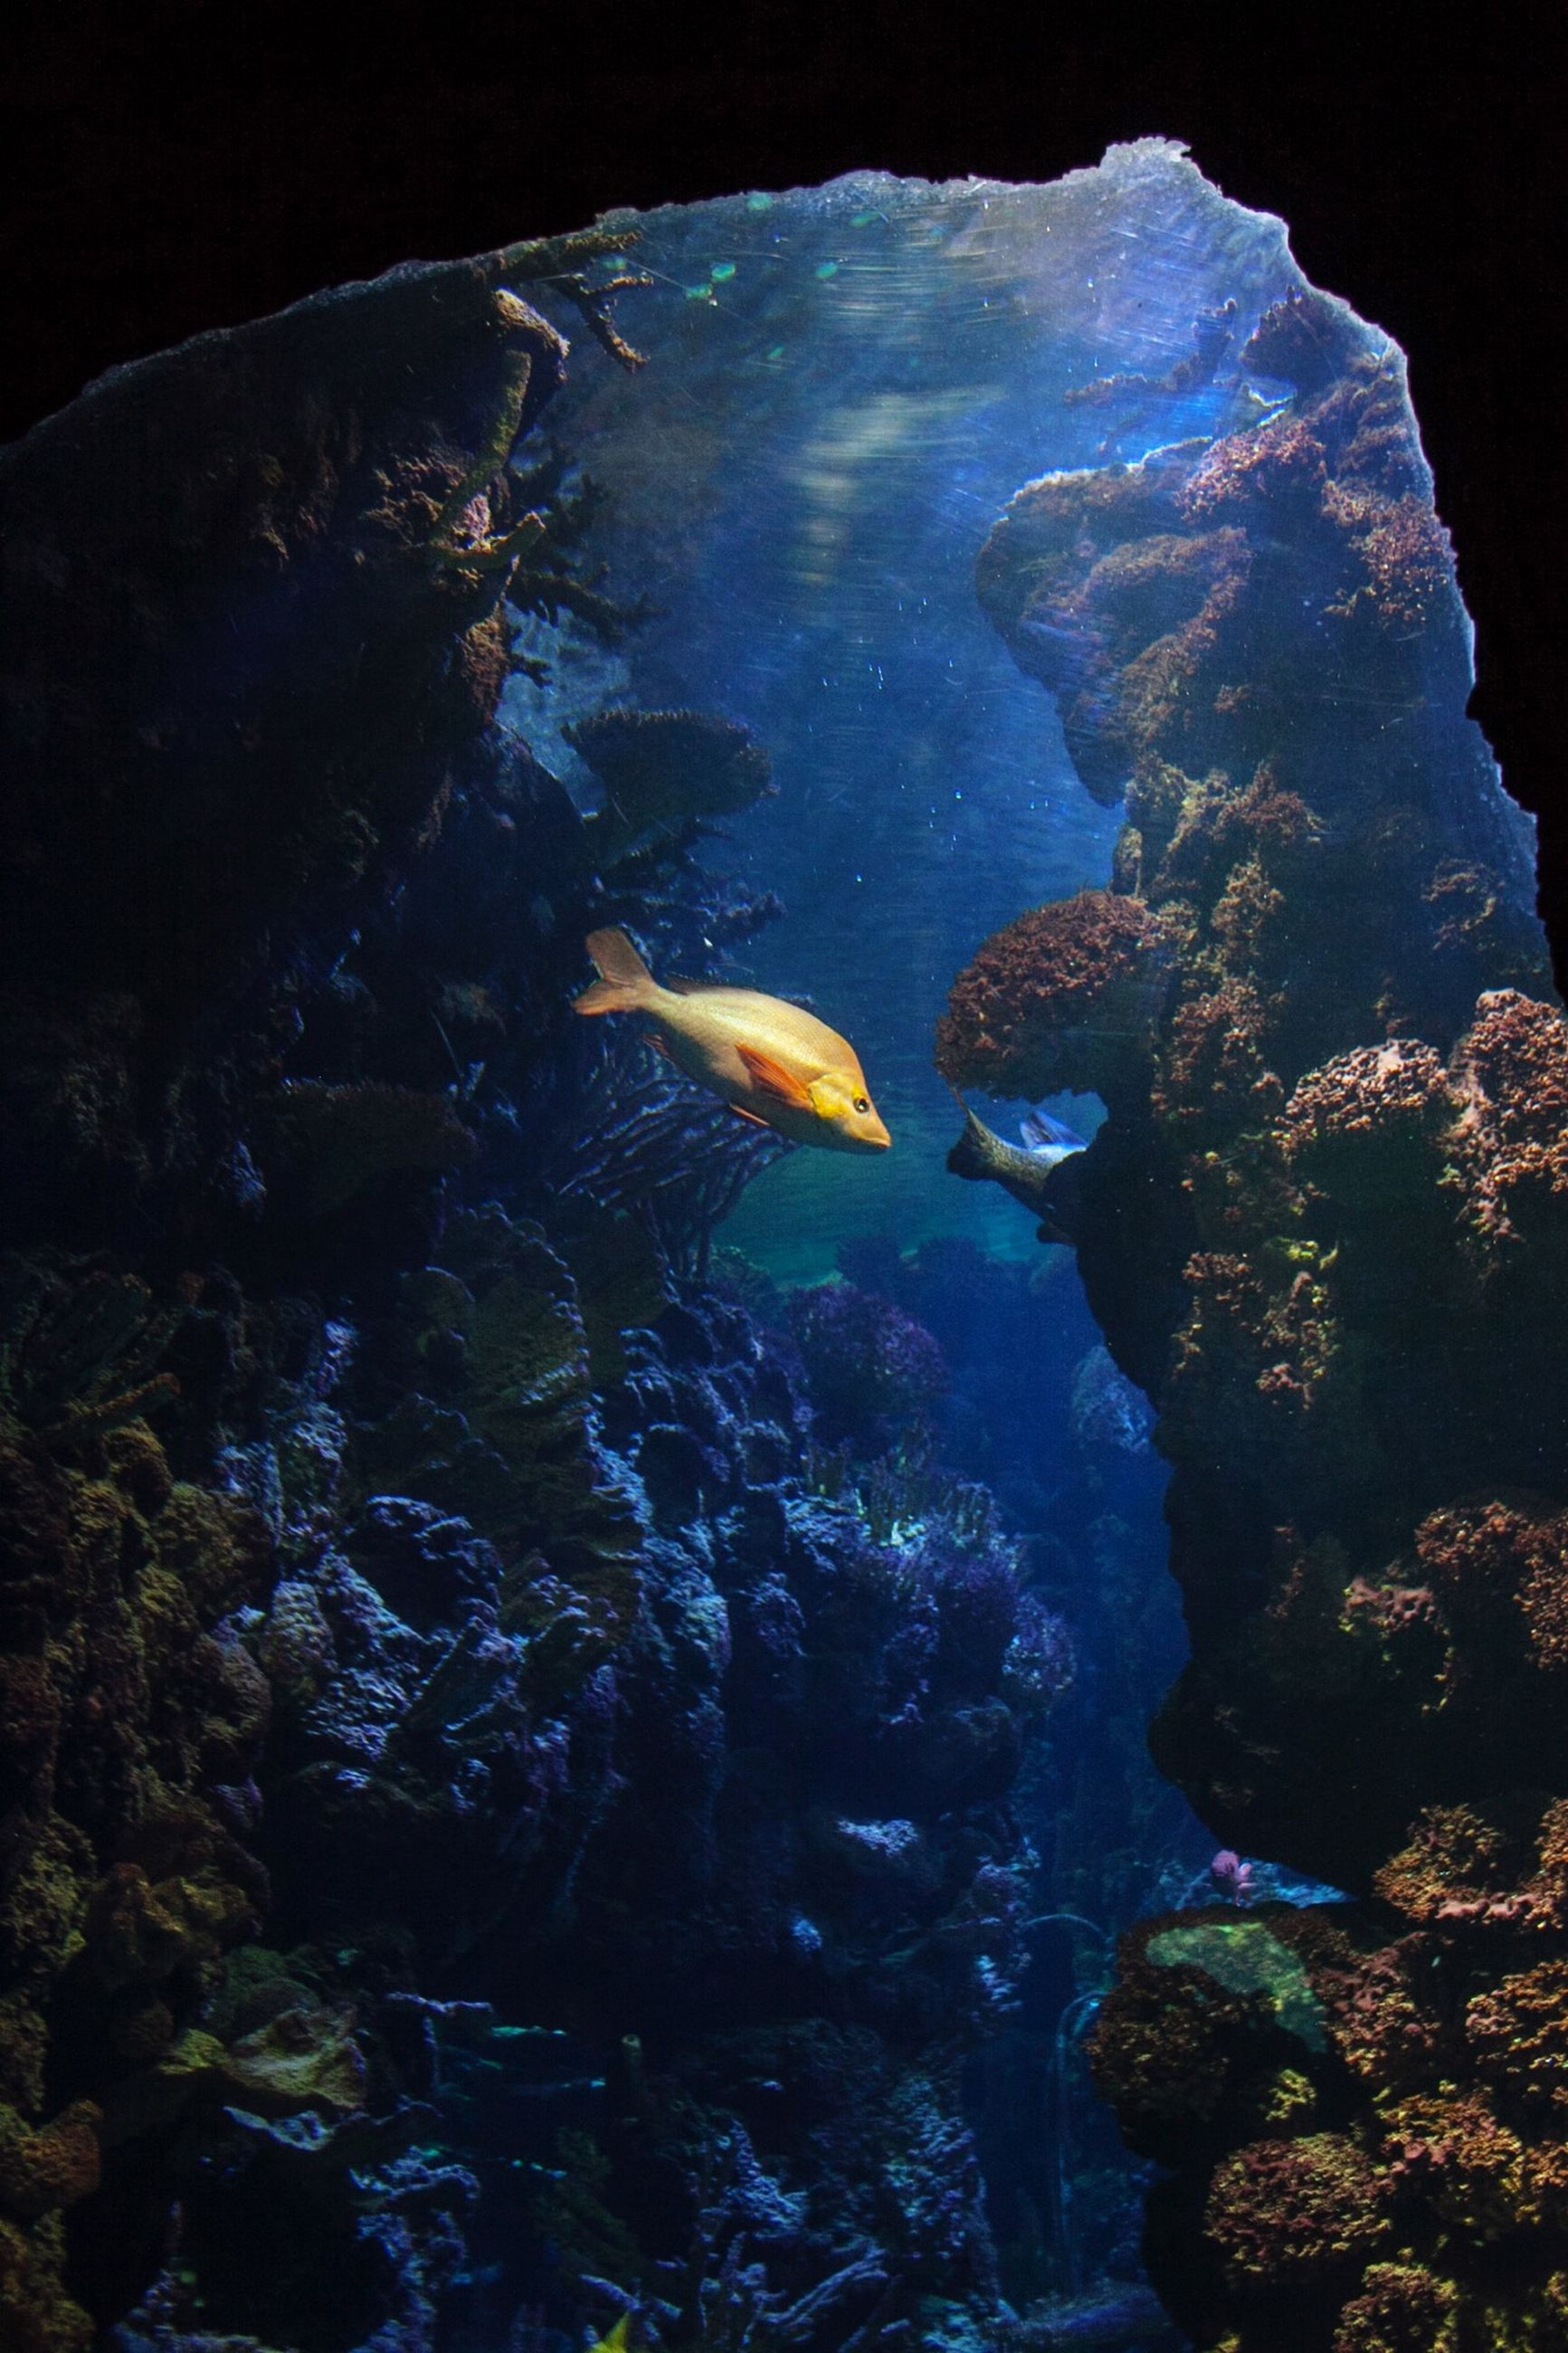 water, underwater, undersea, beauty in nature, rock - object, nature, rock formation, sea, sea life, fish, scenics, tranquility, high angle view, transparent, geology, no people, swimming, coral, tranquil scene, blue